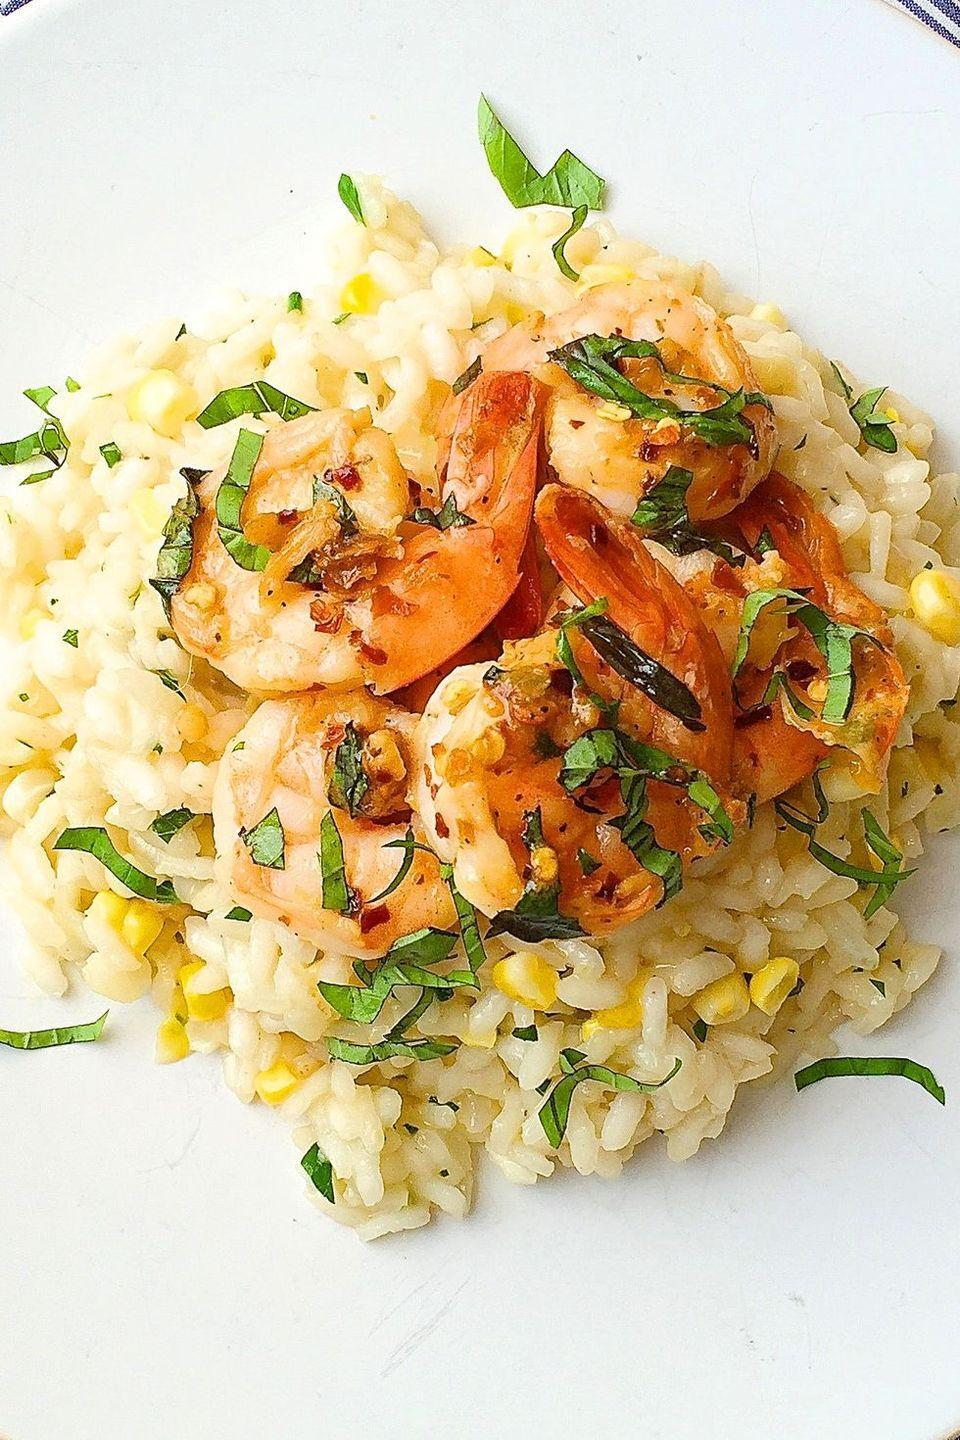 """<p>It's the creamy, dreamy dish your winter nights need.<br><br>Get the recipe from <a href=""""https://www.delish.com/cooking/recipe-ideas/recipes/a43431/sweet-corn-risotto-sauteed-shrimp-recipe/"""" rel=""""nofollow noopener"""" target=""""_blank"""" data-ylk=""""slk:Delish"""" class=""""link rapid-noclick-resp"""">Delish</a>.</p>"""